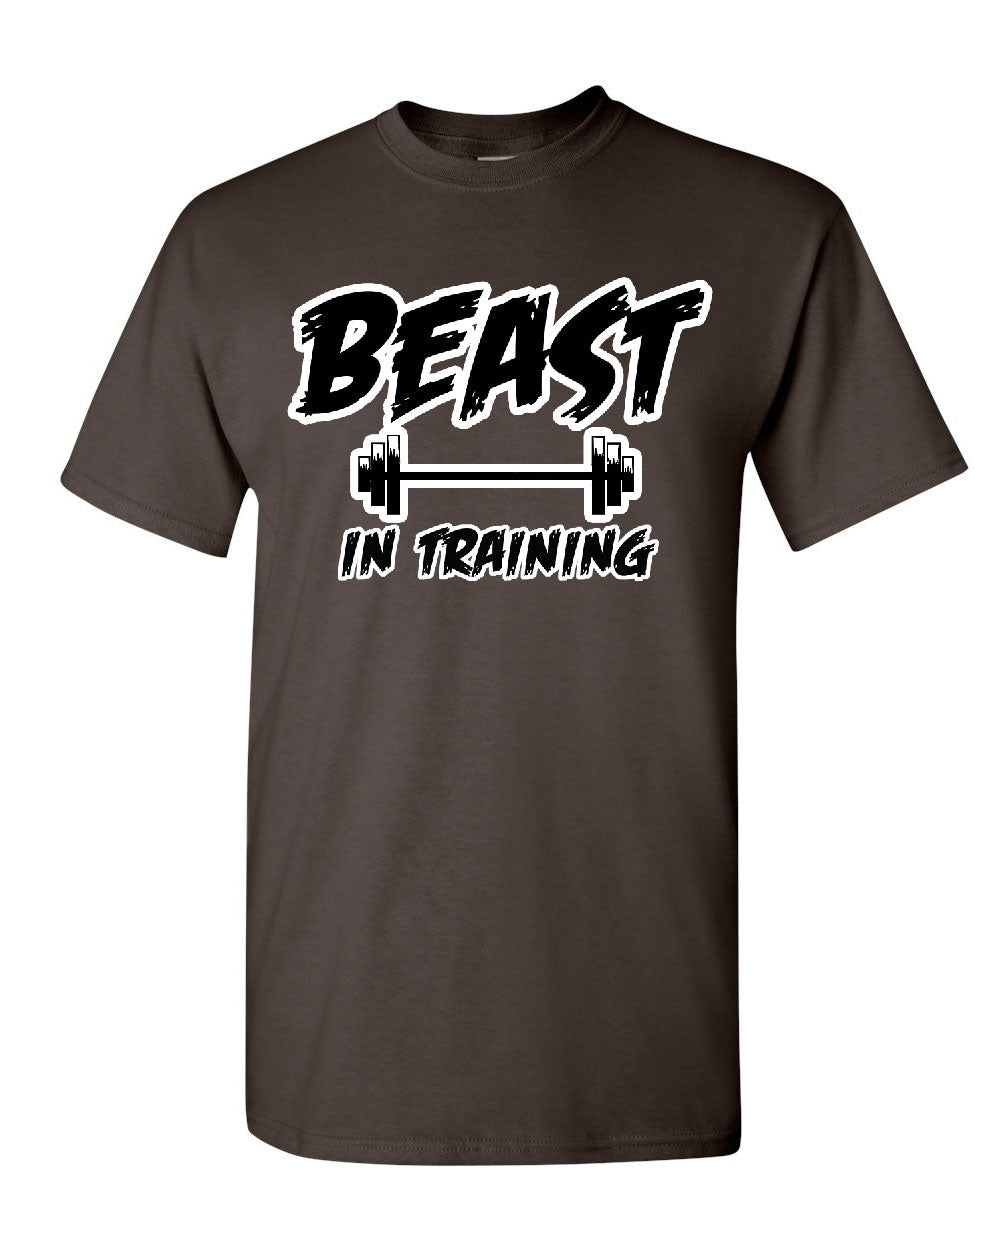 Beast in training t shirt funny gym workout fitness tee for T shirts for gym workout